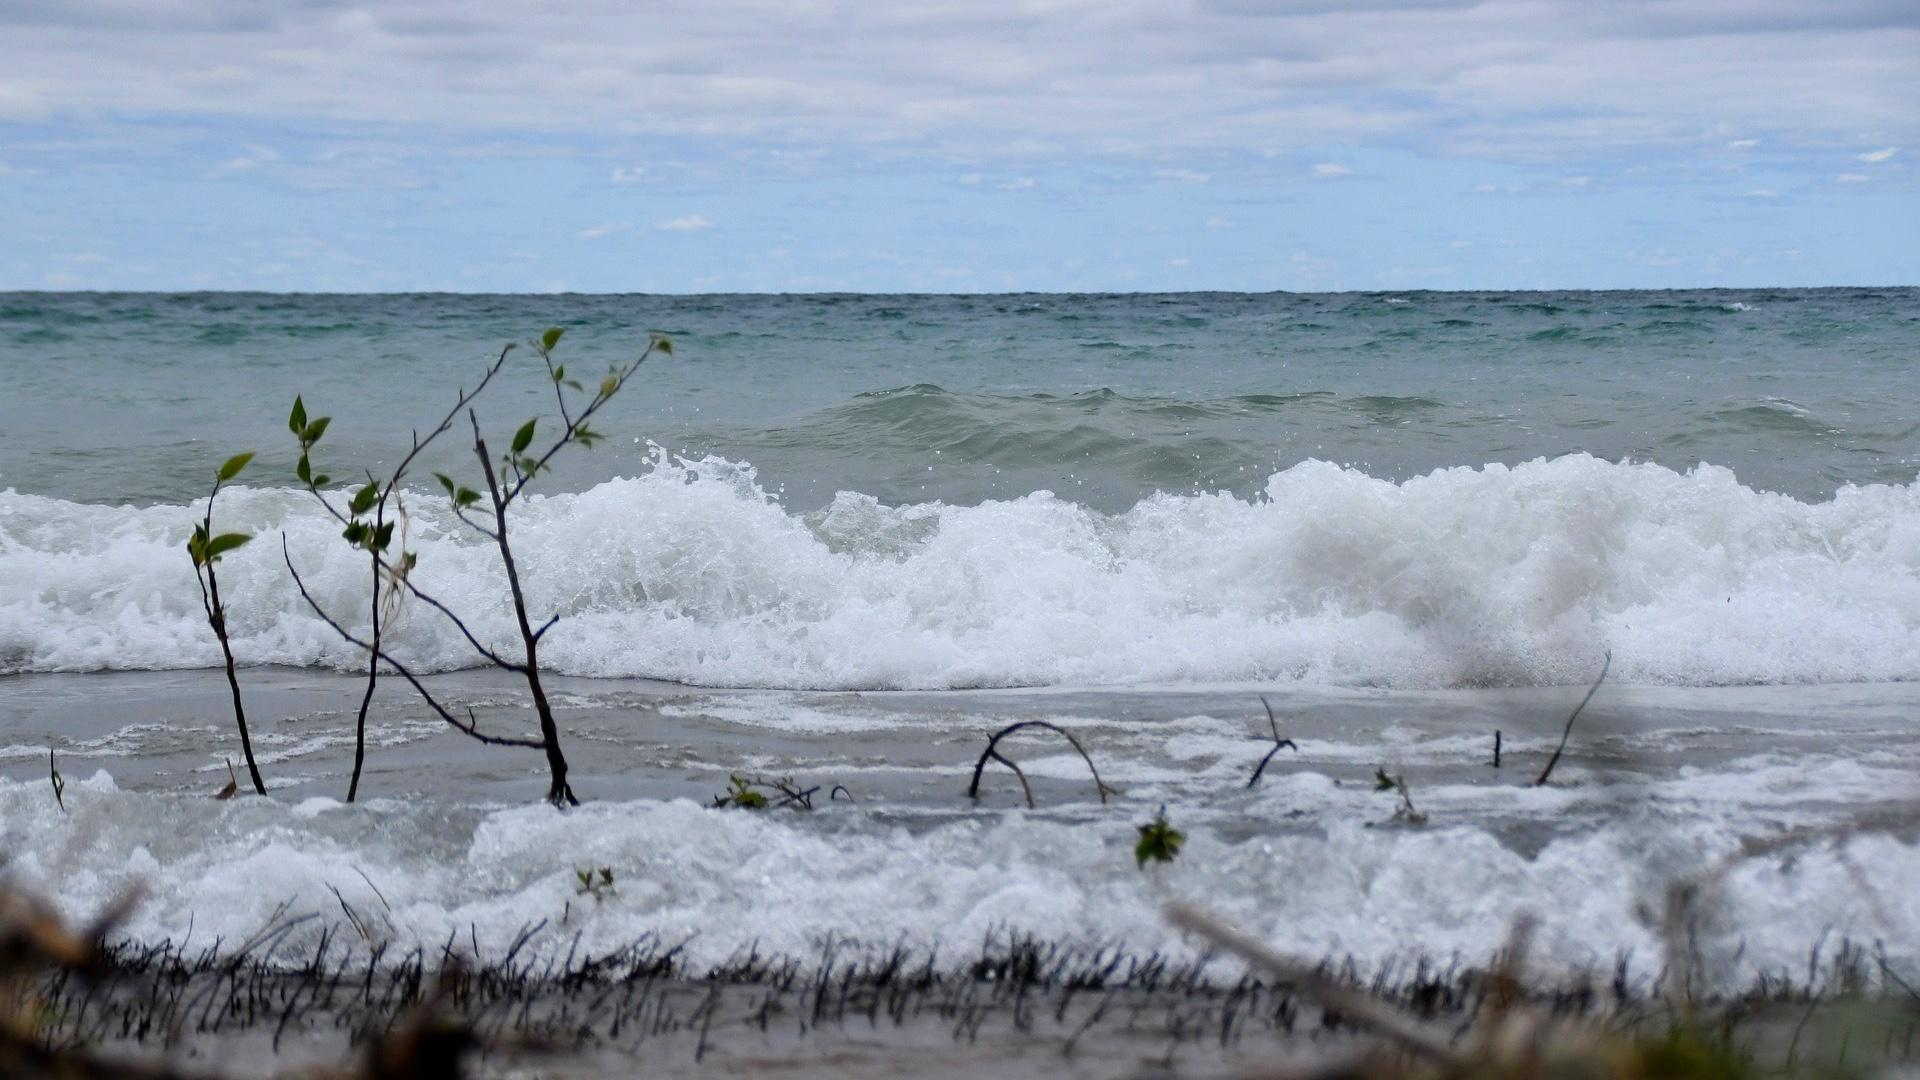 Strong winds are creating high waves along the Lake Michigan shoreline. (Nikkiwjourney / Pixabay)